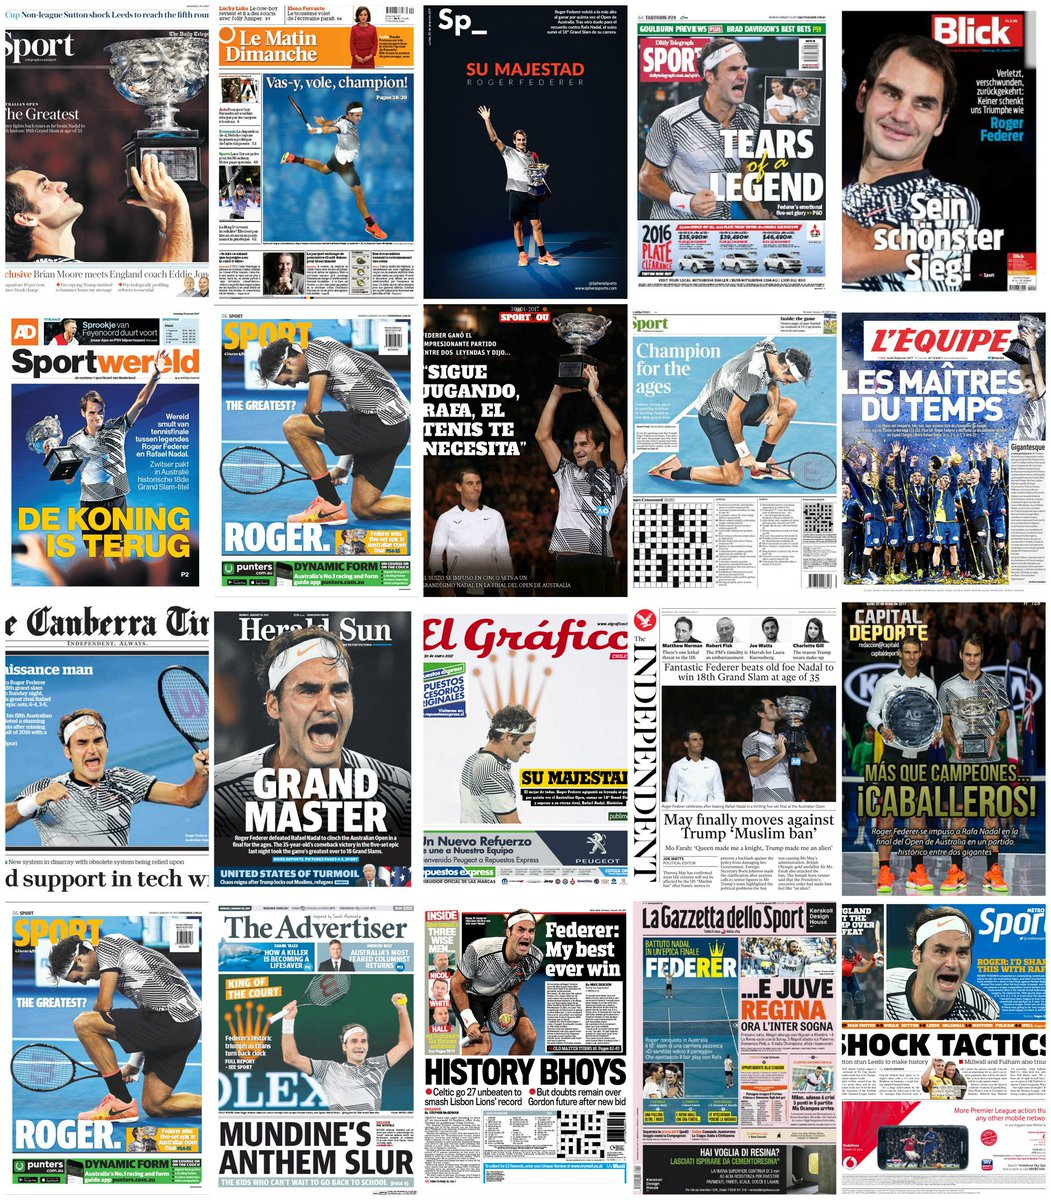 Press all over the world celebrating Roger Federer's 18th Grand Slam and his 5th Australian Open title. https://t.co/lPJuNUbj7Y